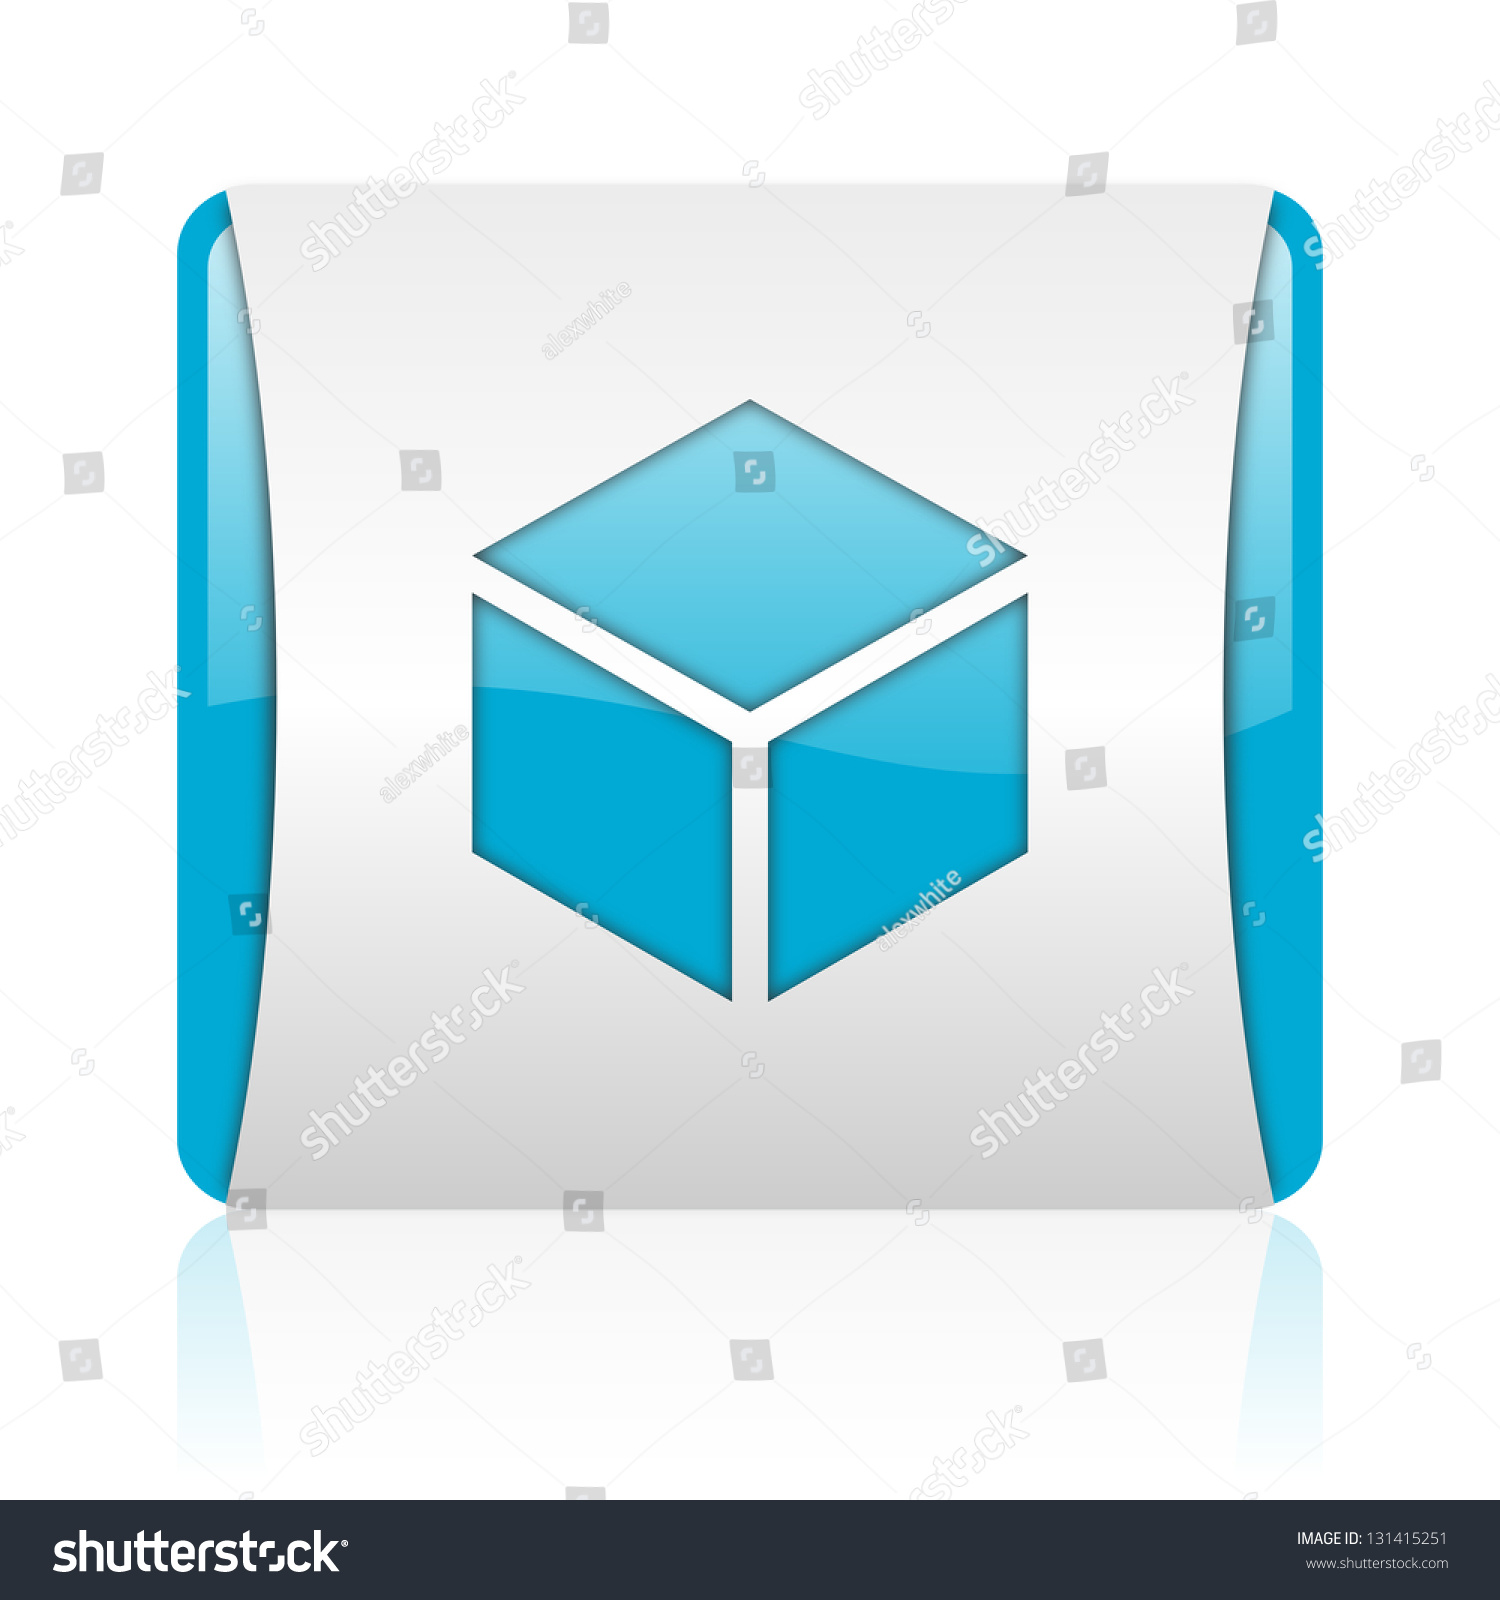 Box Blue White Square Web Glossy Stock Illustration 131415251